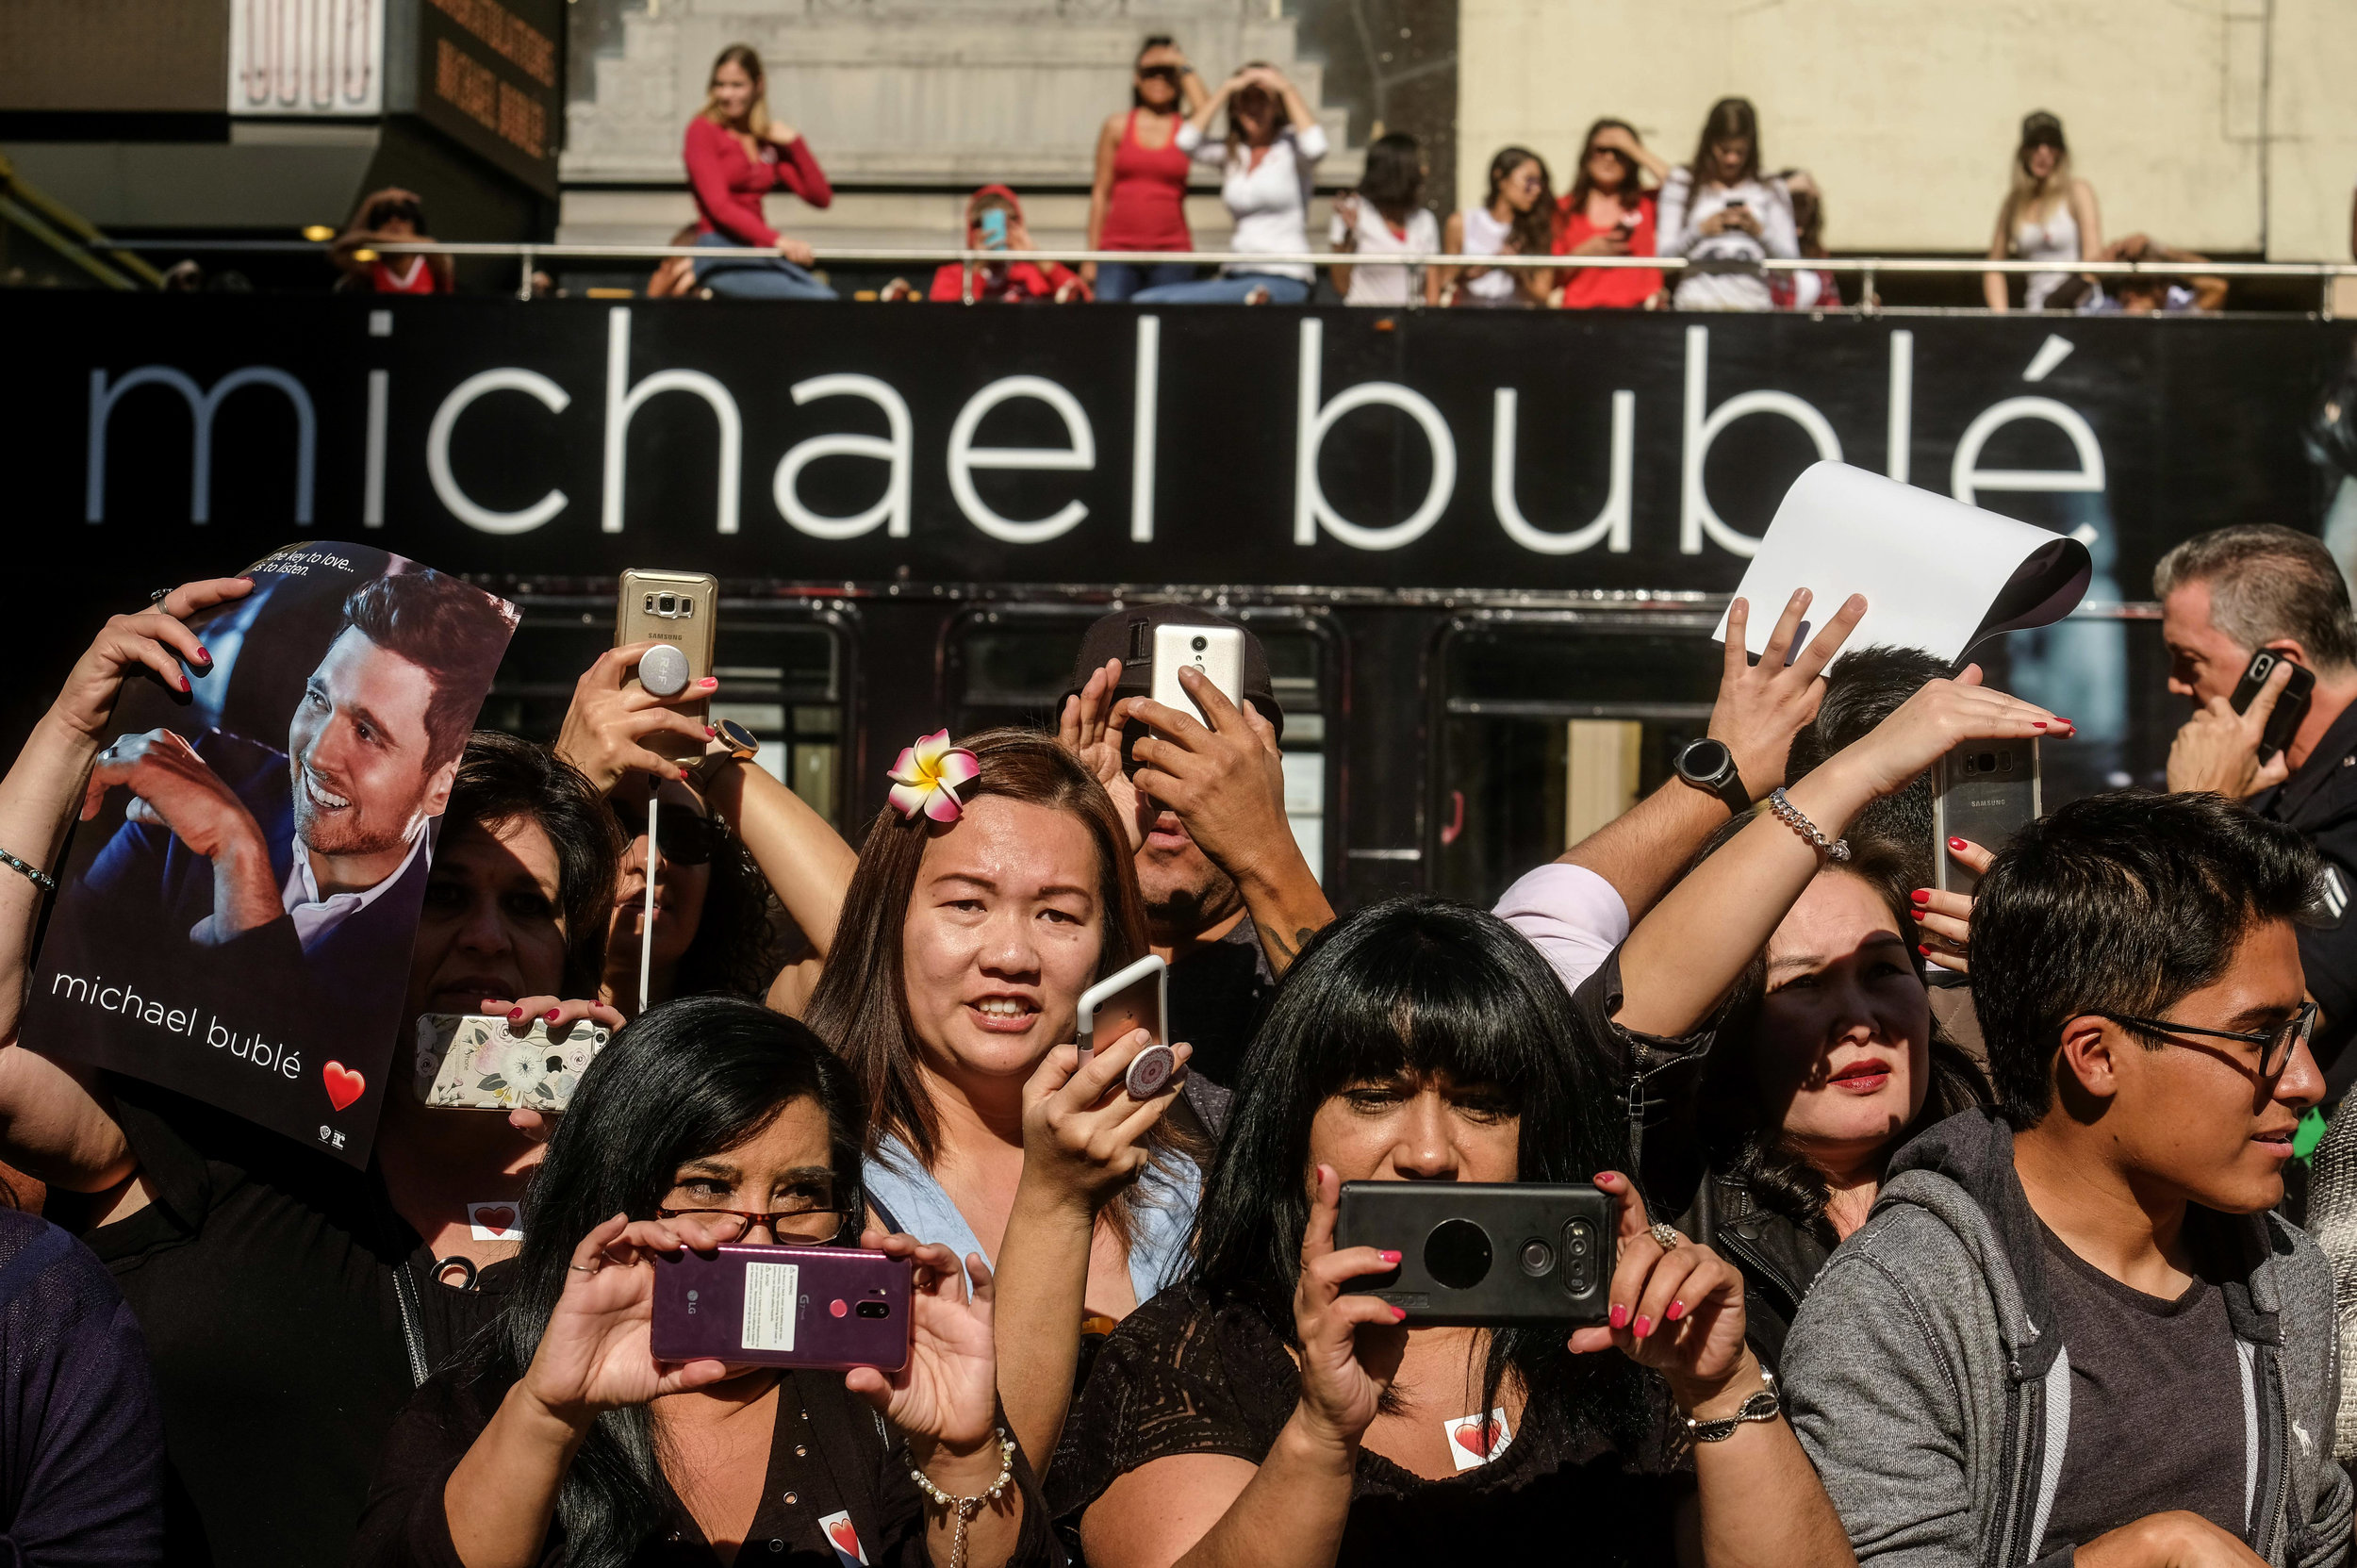 Fans attend singer Michael Buble's star ceremony on the Hollywood Walk of Fame Star where he was the recipient of the 2,650th star on the Hollywood Walk of Fame in the category of Recording on November 16, 2018 in Los Angeles.